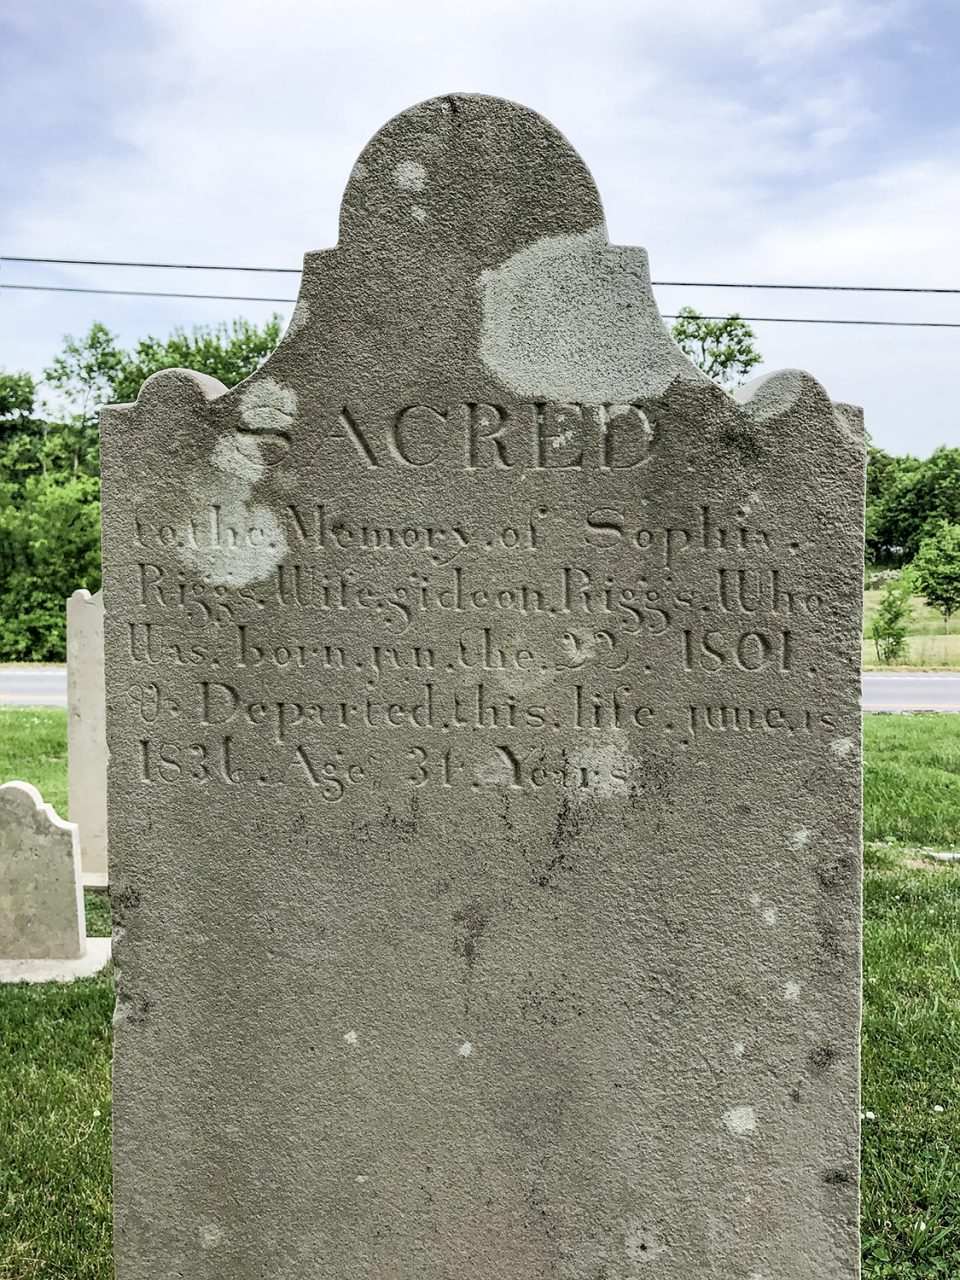 """Tombstone in the Riggs Crossroads Cemetery in Williamson County, Tennessee: """"Sacred to the memory of Sophia Riggs, Wife. Gideon Riggs. Who was born Jan. the 22. 1801. & Departed this life the 16th of June 18, 1836. Aged 34 years."""""""